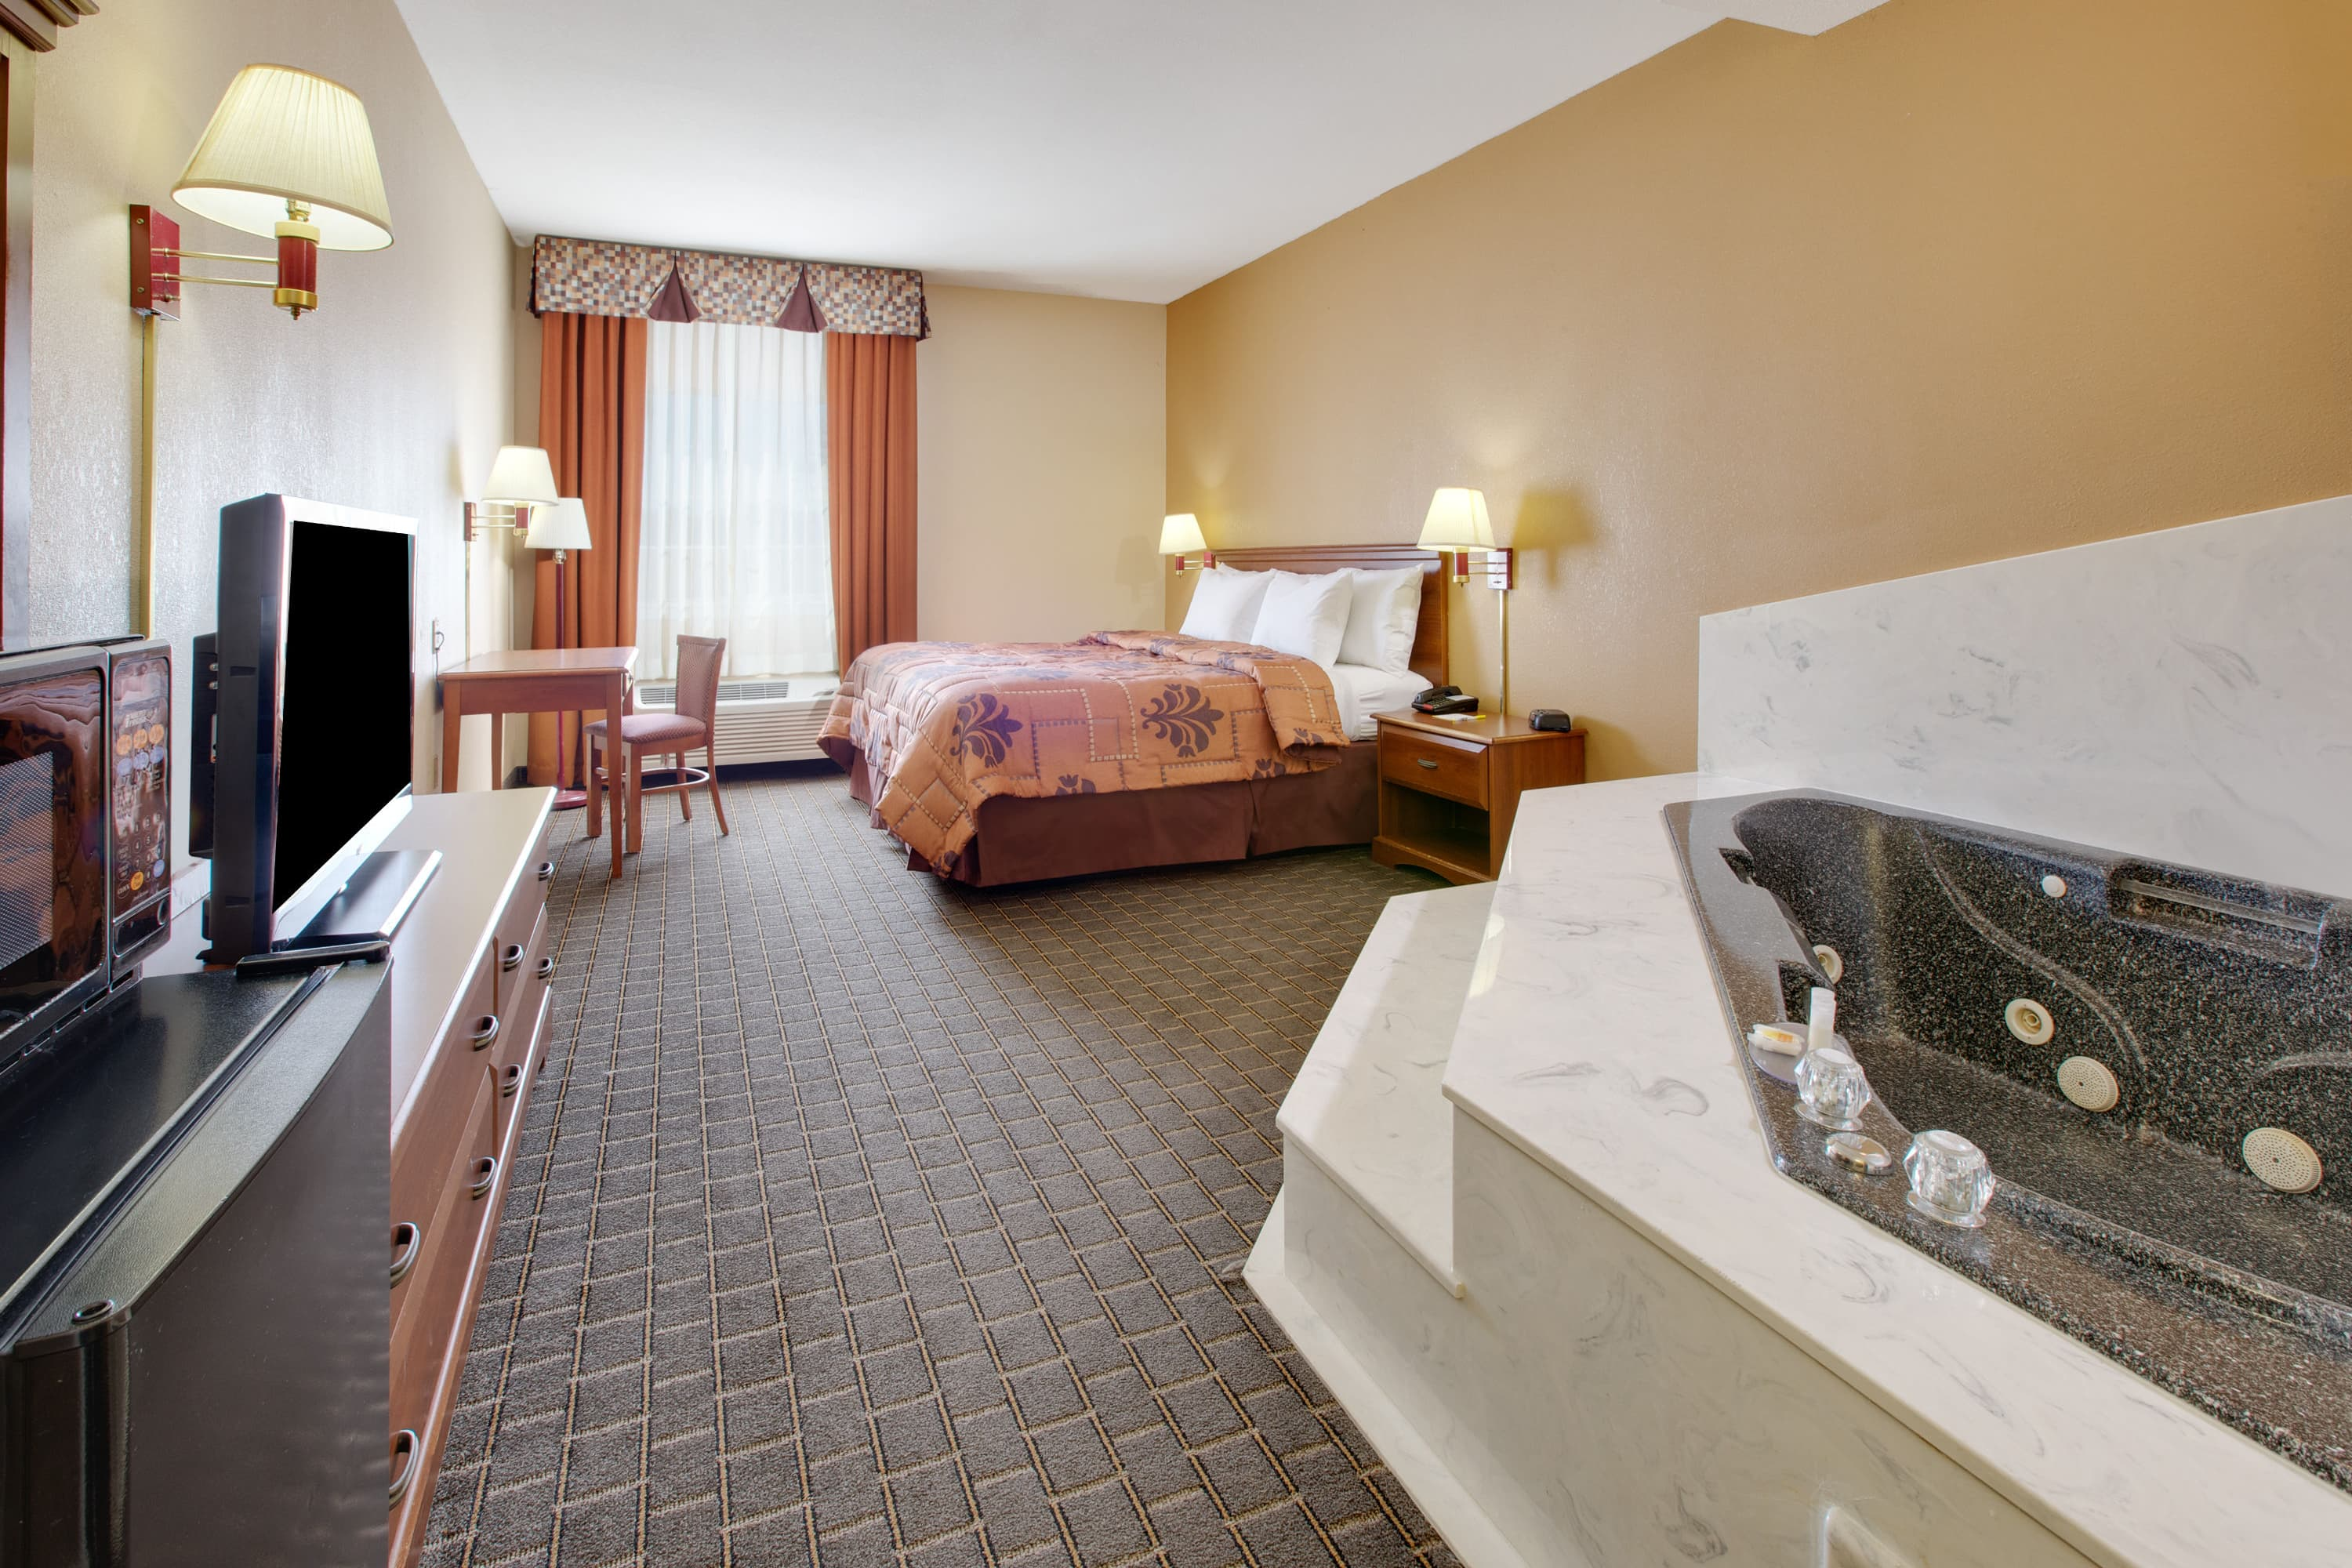 Days Inn Mesquite Rodeo TX suite in Mesquite, Texas